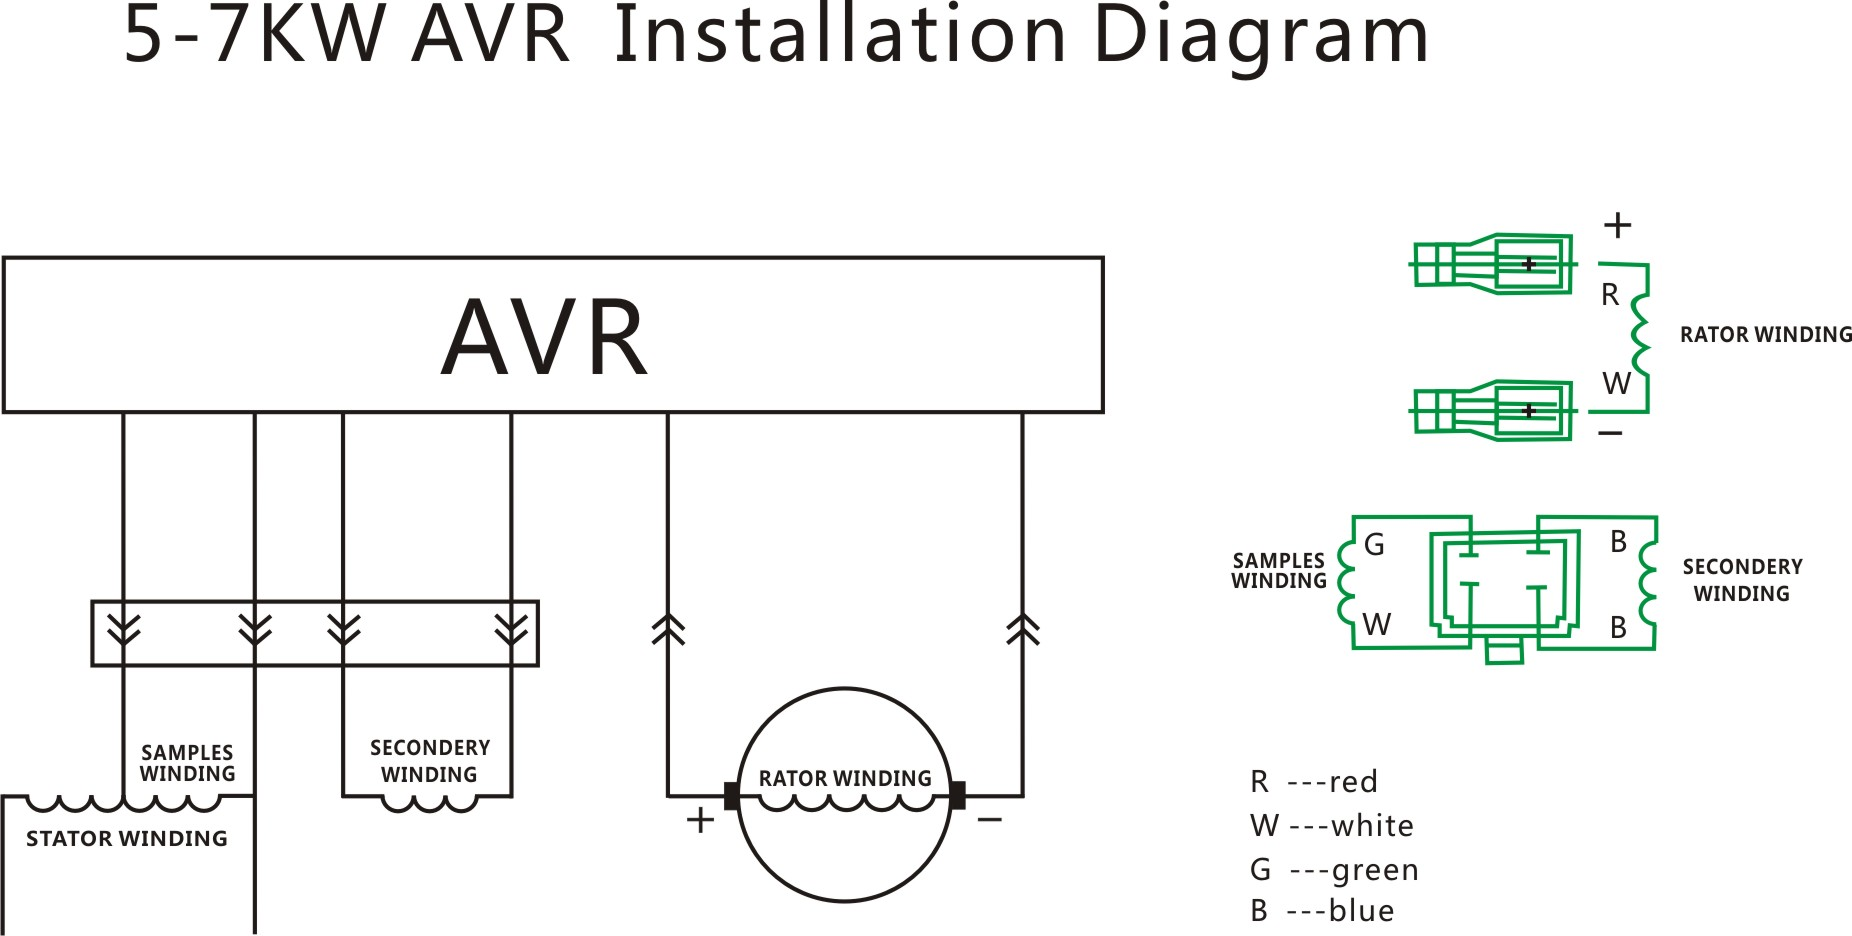 hight resolution of for avr wiring diagram wiring diagrams 5kw avr diagram avr generator circuit diagram wiring diagrams trailer